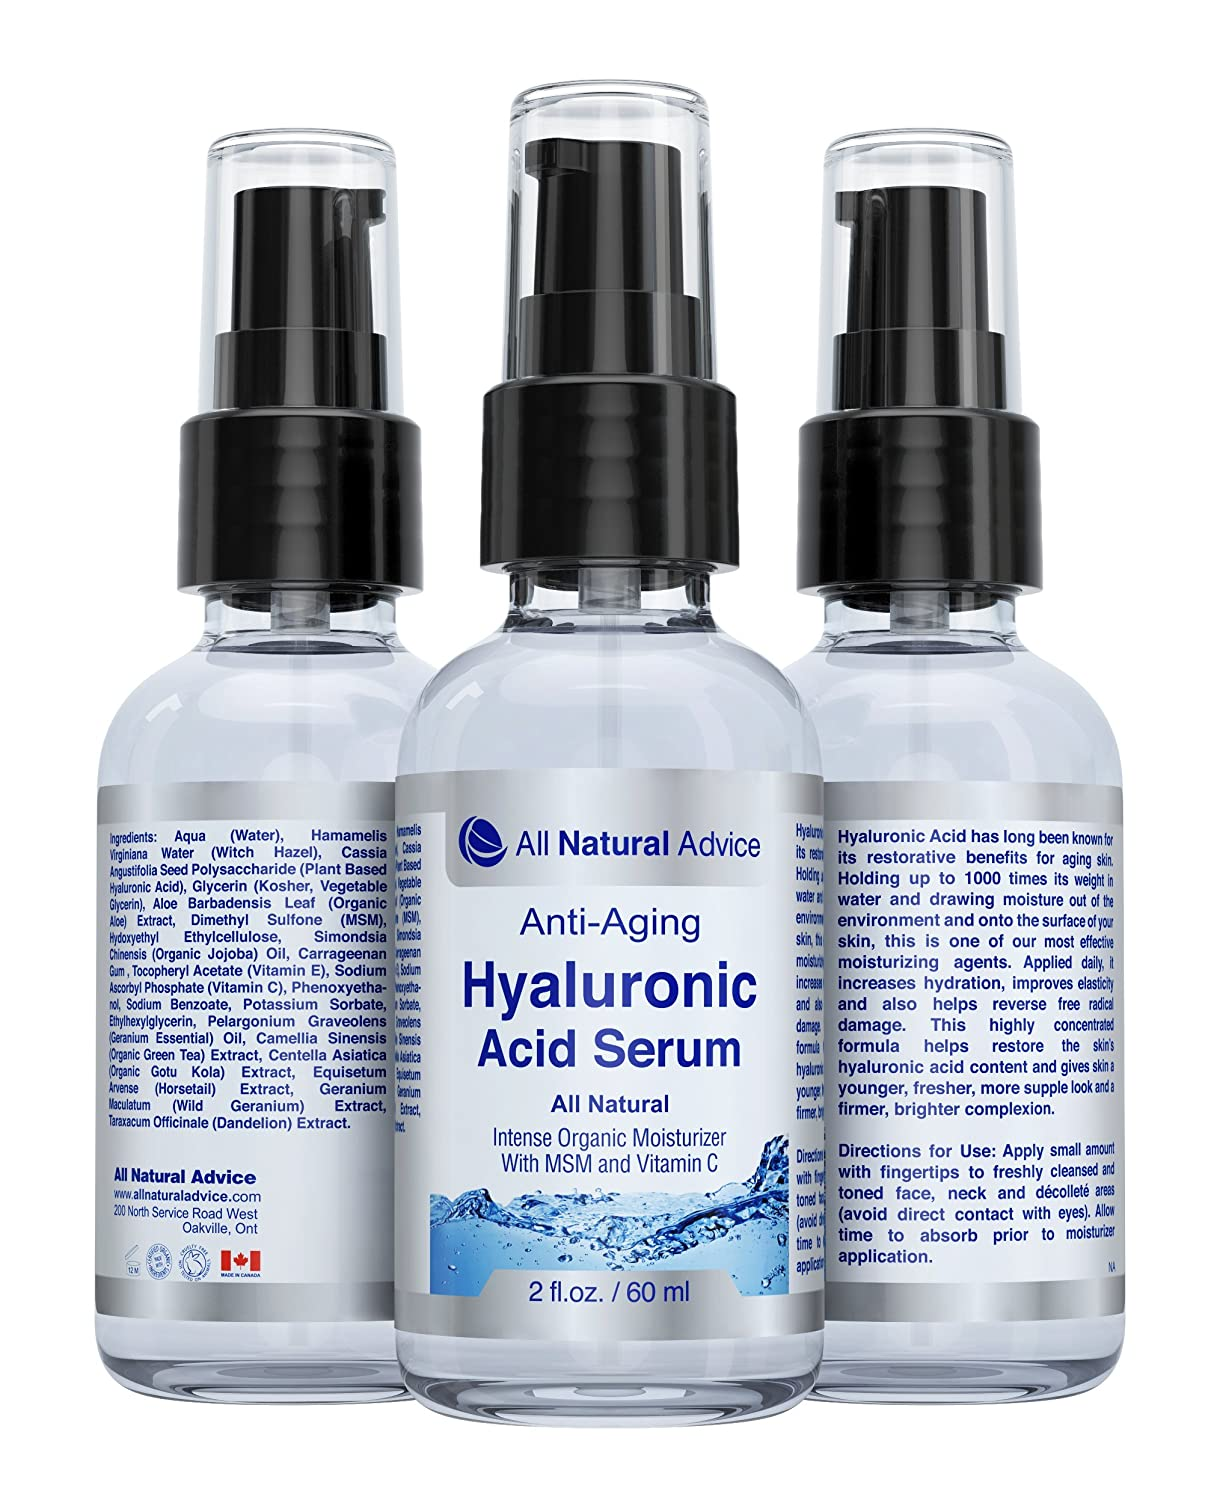 Pure Hyaluronic Acid Moisturizing Serum | Anti-Aging | Canadian Made | Organic | Anti-Wrinkle Skin Care Supplement with Vitamin C Serum & Intense Organic Moisturizer Serum with MSM and Green Tea | Restore the skin's hyaluronic acid content and give ski